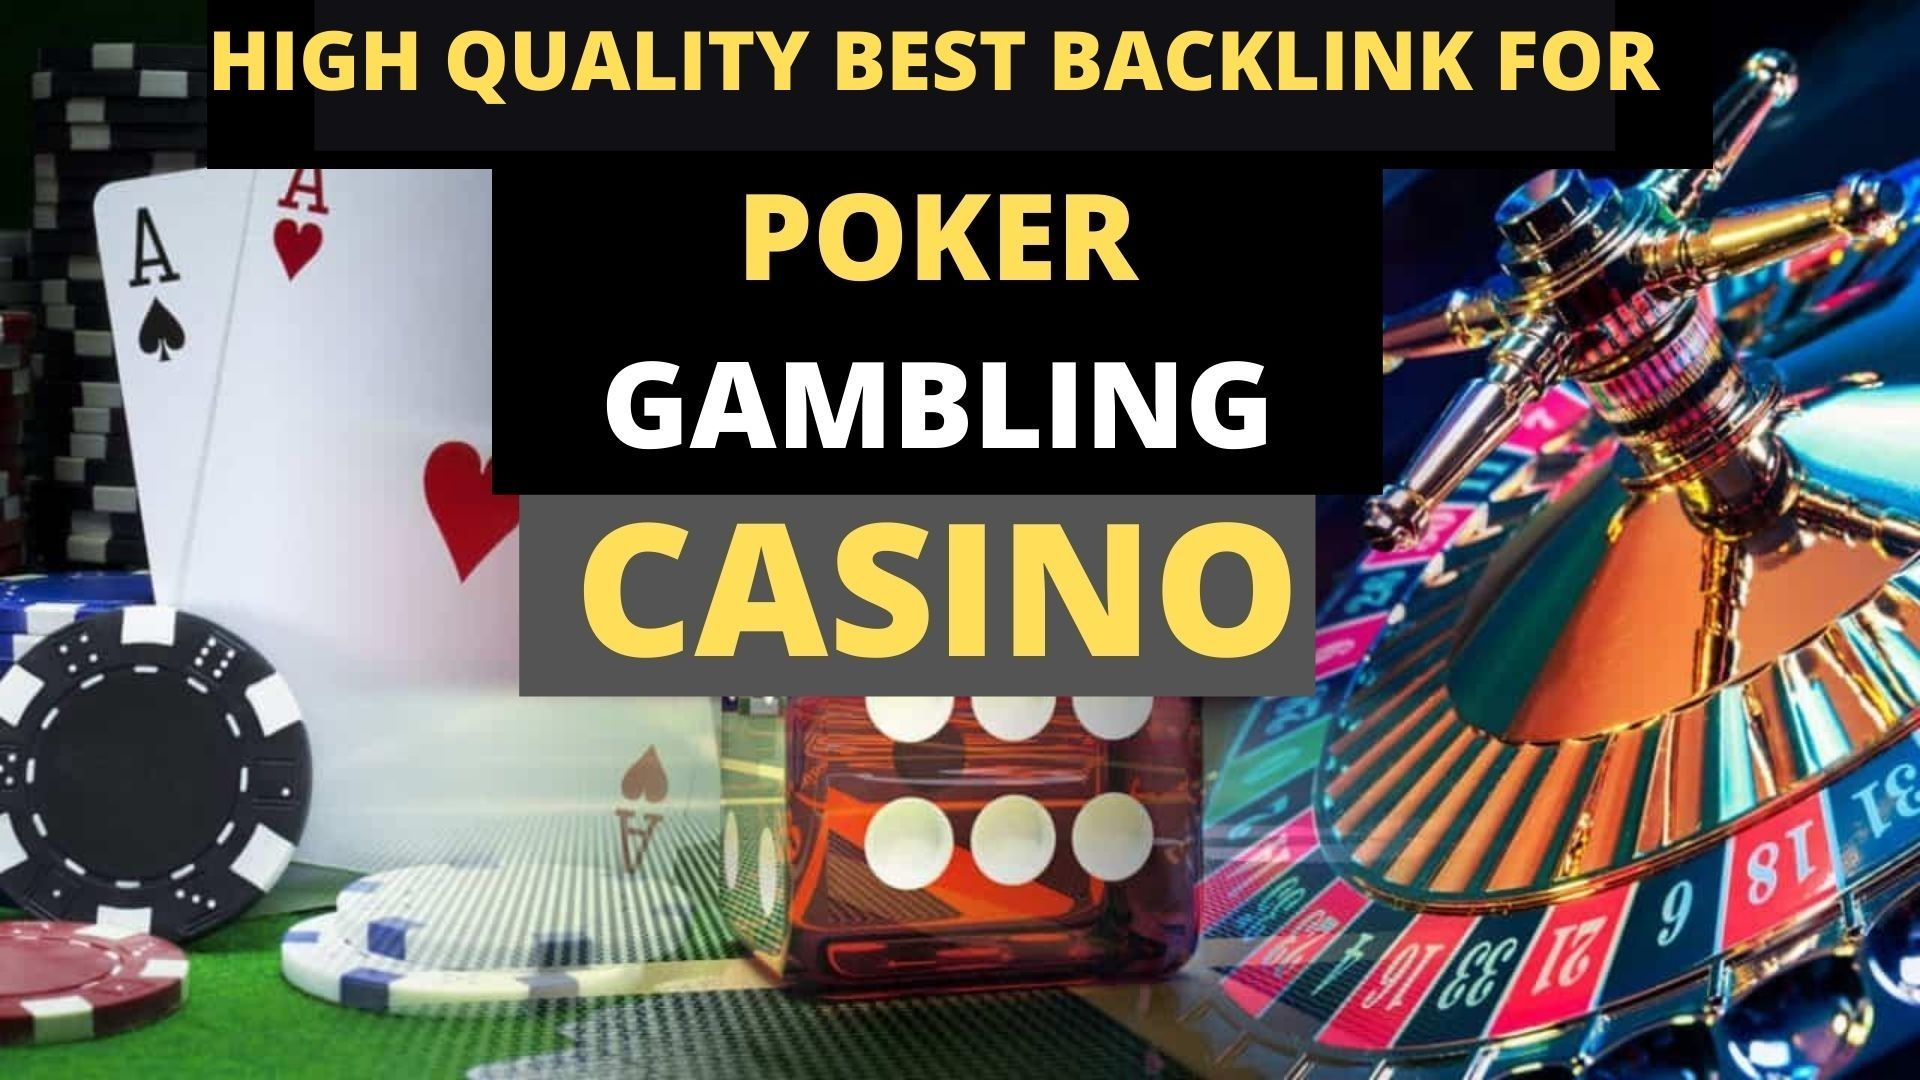 Powerful 50PBN CASINO/ Poker/Gambling/Judi bola/ With Unique Domian Pbn backlinks